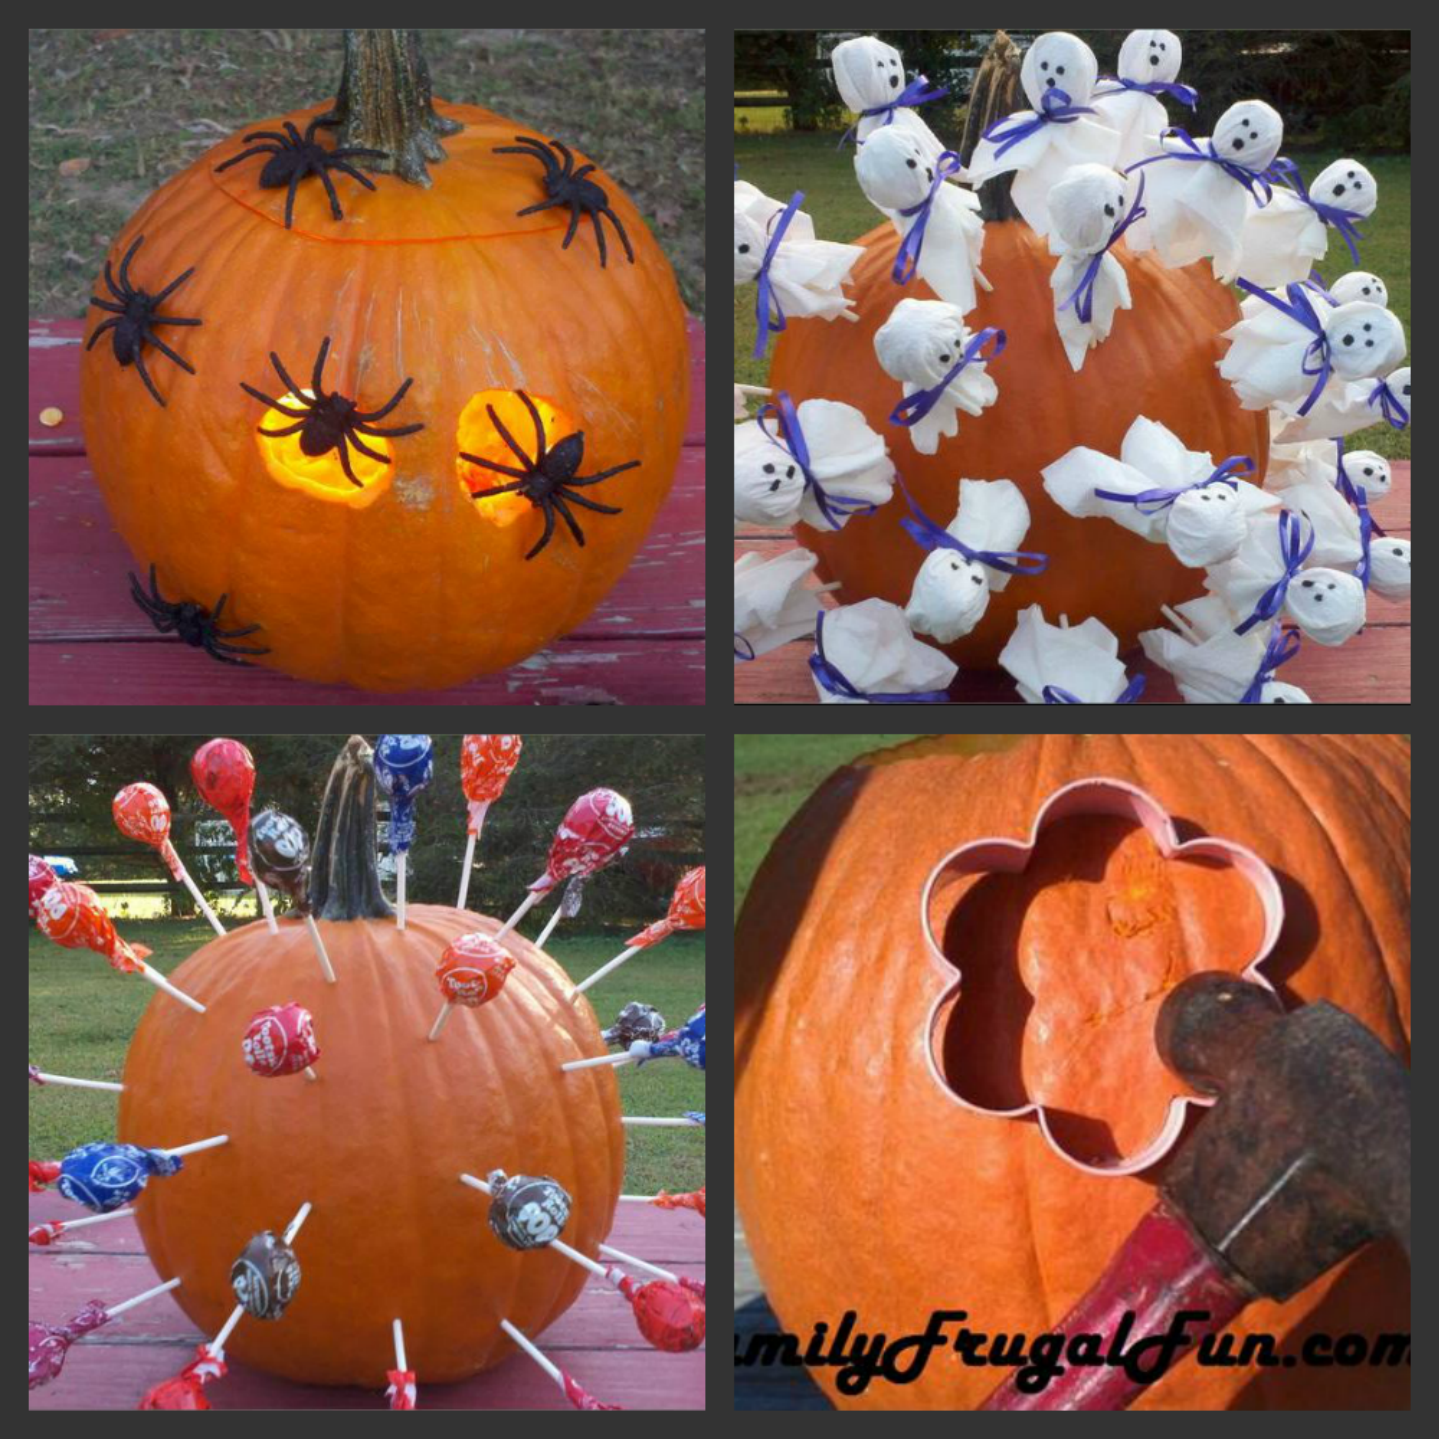 Jack o lantern ideas pumpkin decorating ideas family finds fun - Attractive kid halloween decorating design ideas with various spiderman pumpkin carving ...